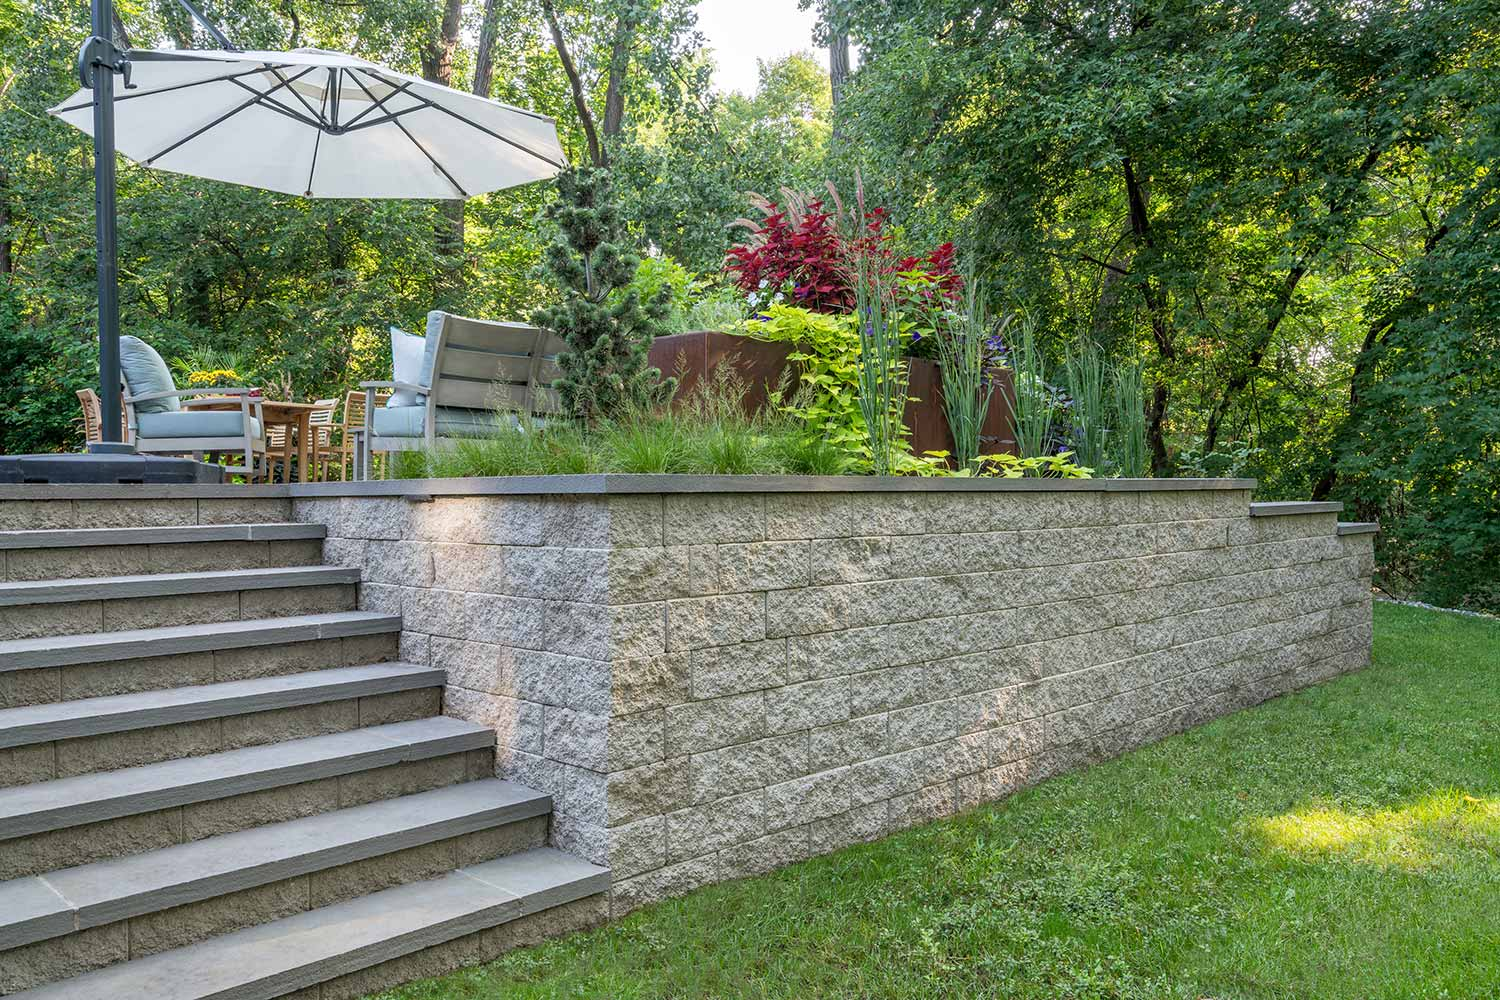 modular brick retaining wall patio with built in planters